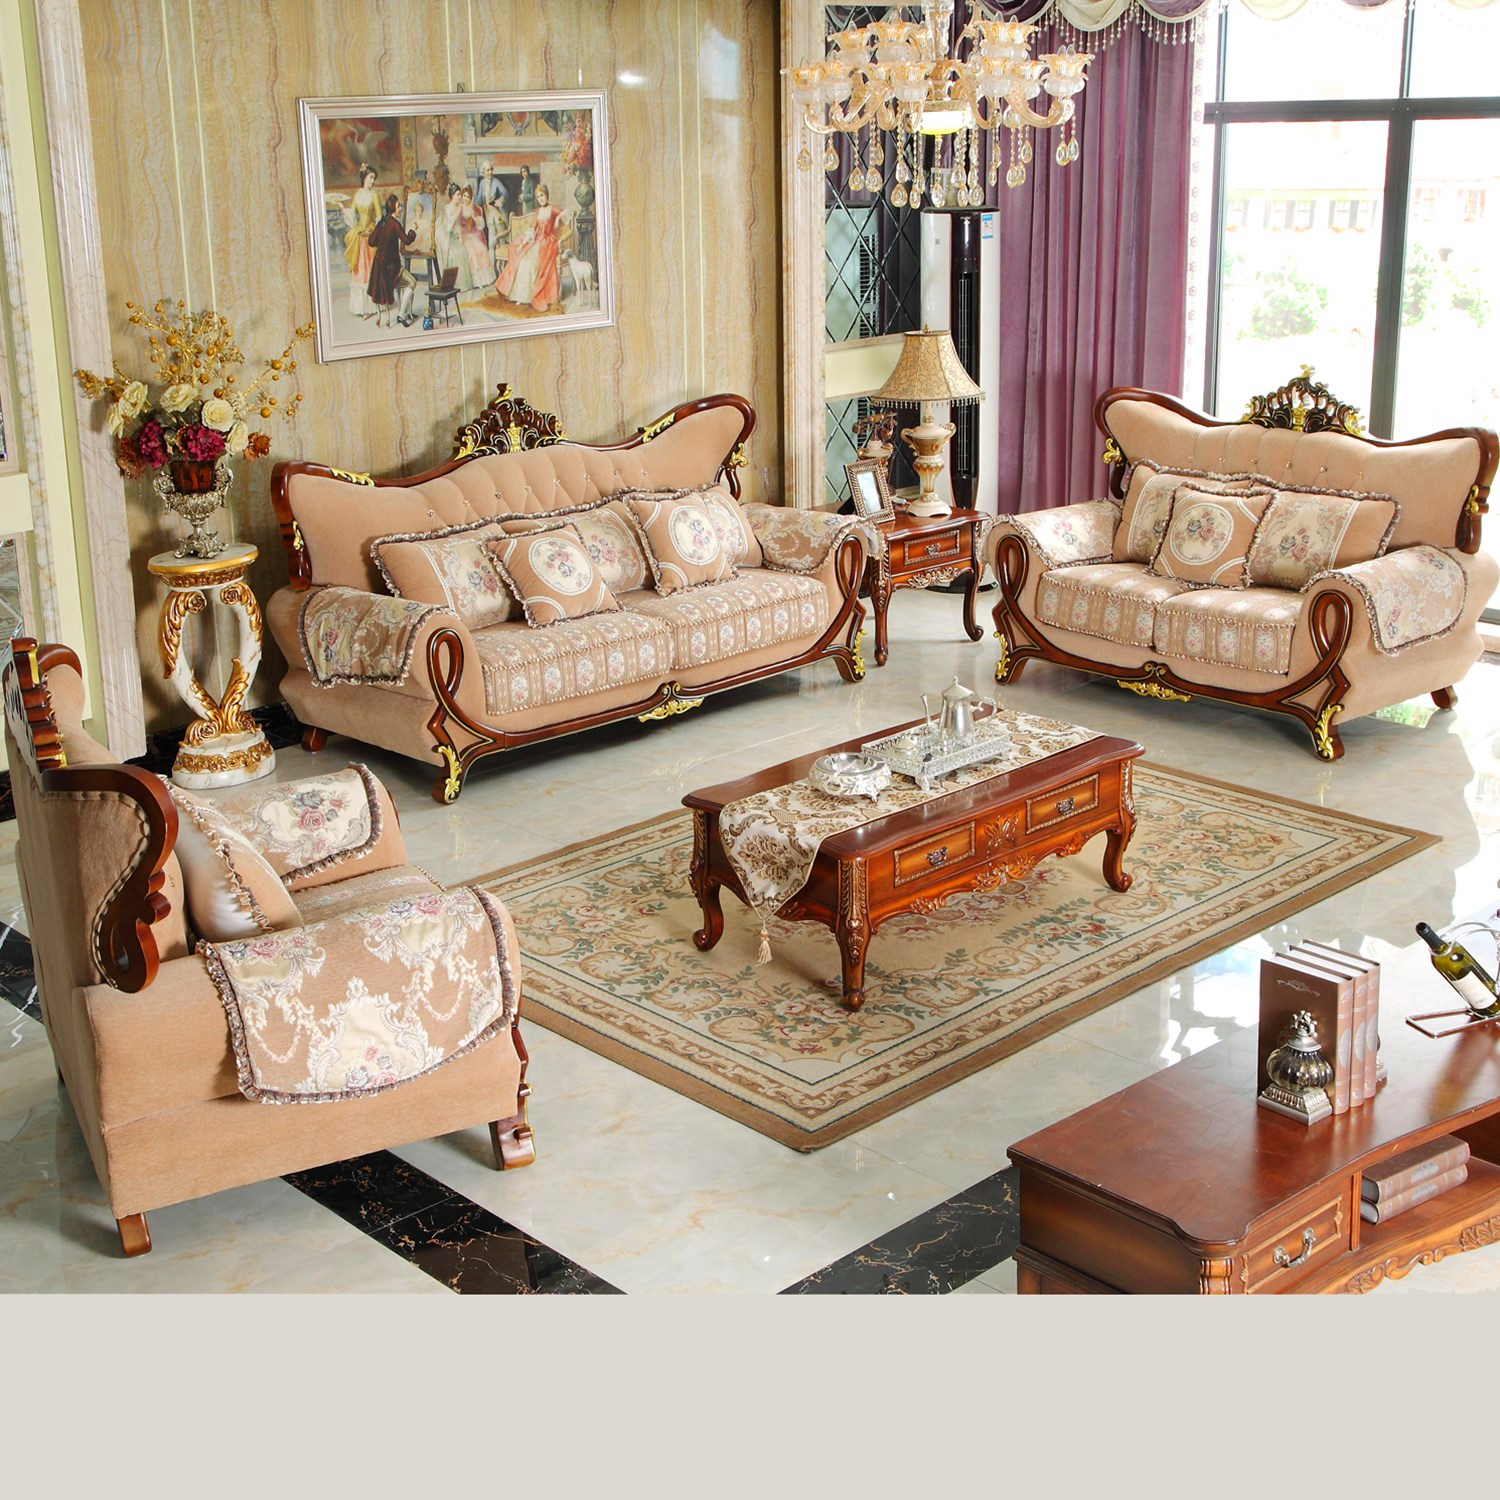 968 Fabric Sofa for Living Room Furniture